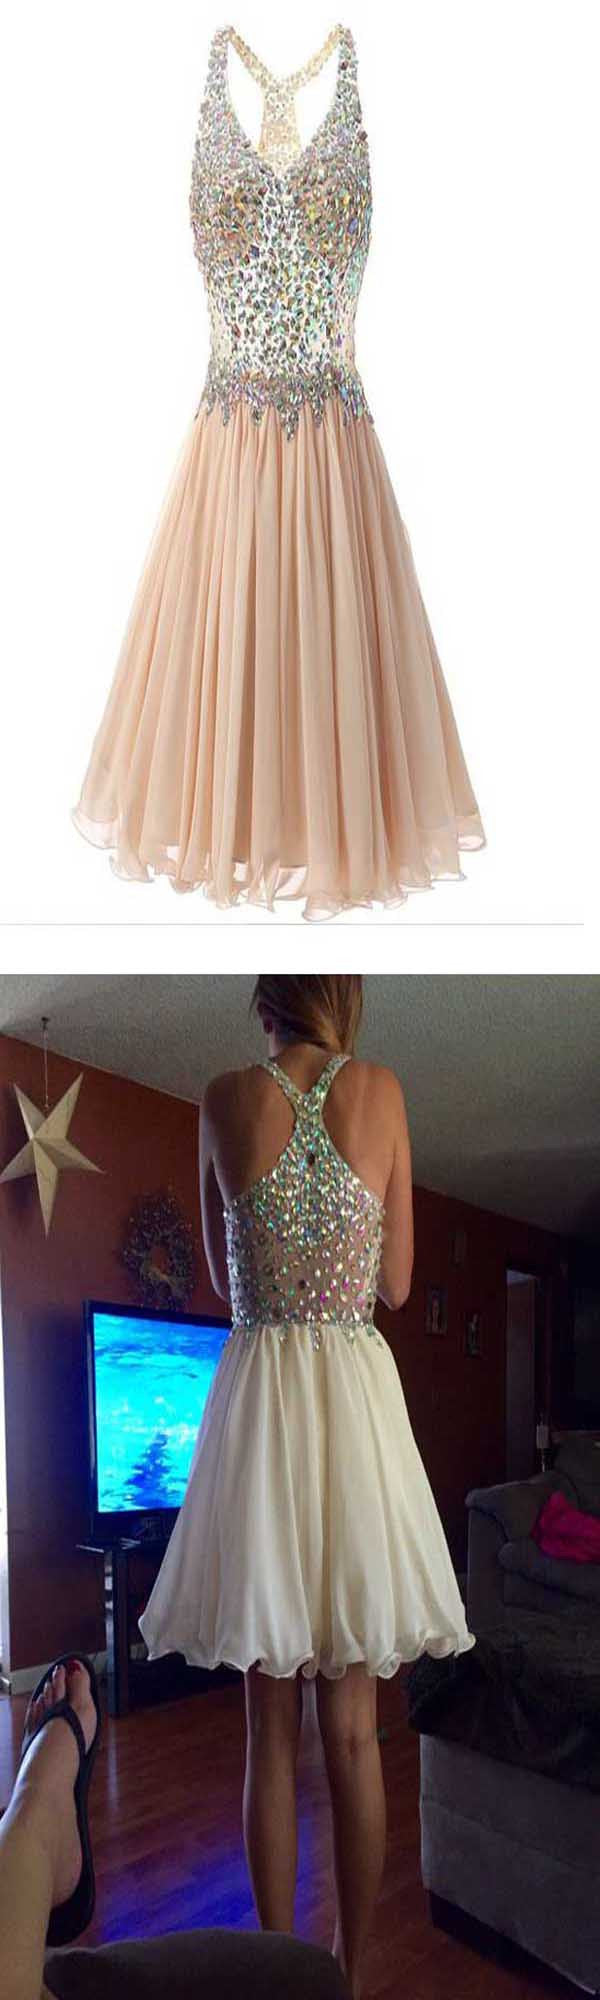 Gorgeous Sparkle Top Chiffon Open Back Homecoming Dresses, BG51456 - Bubble Gown